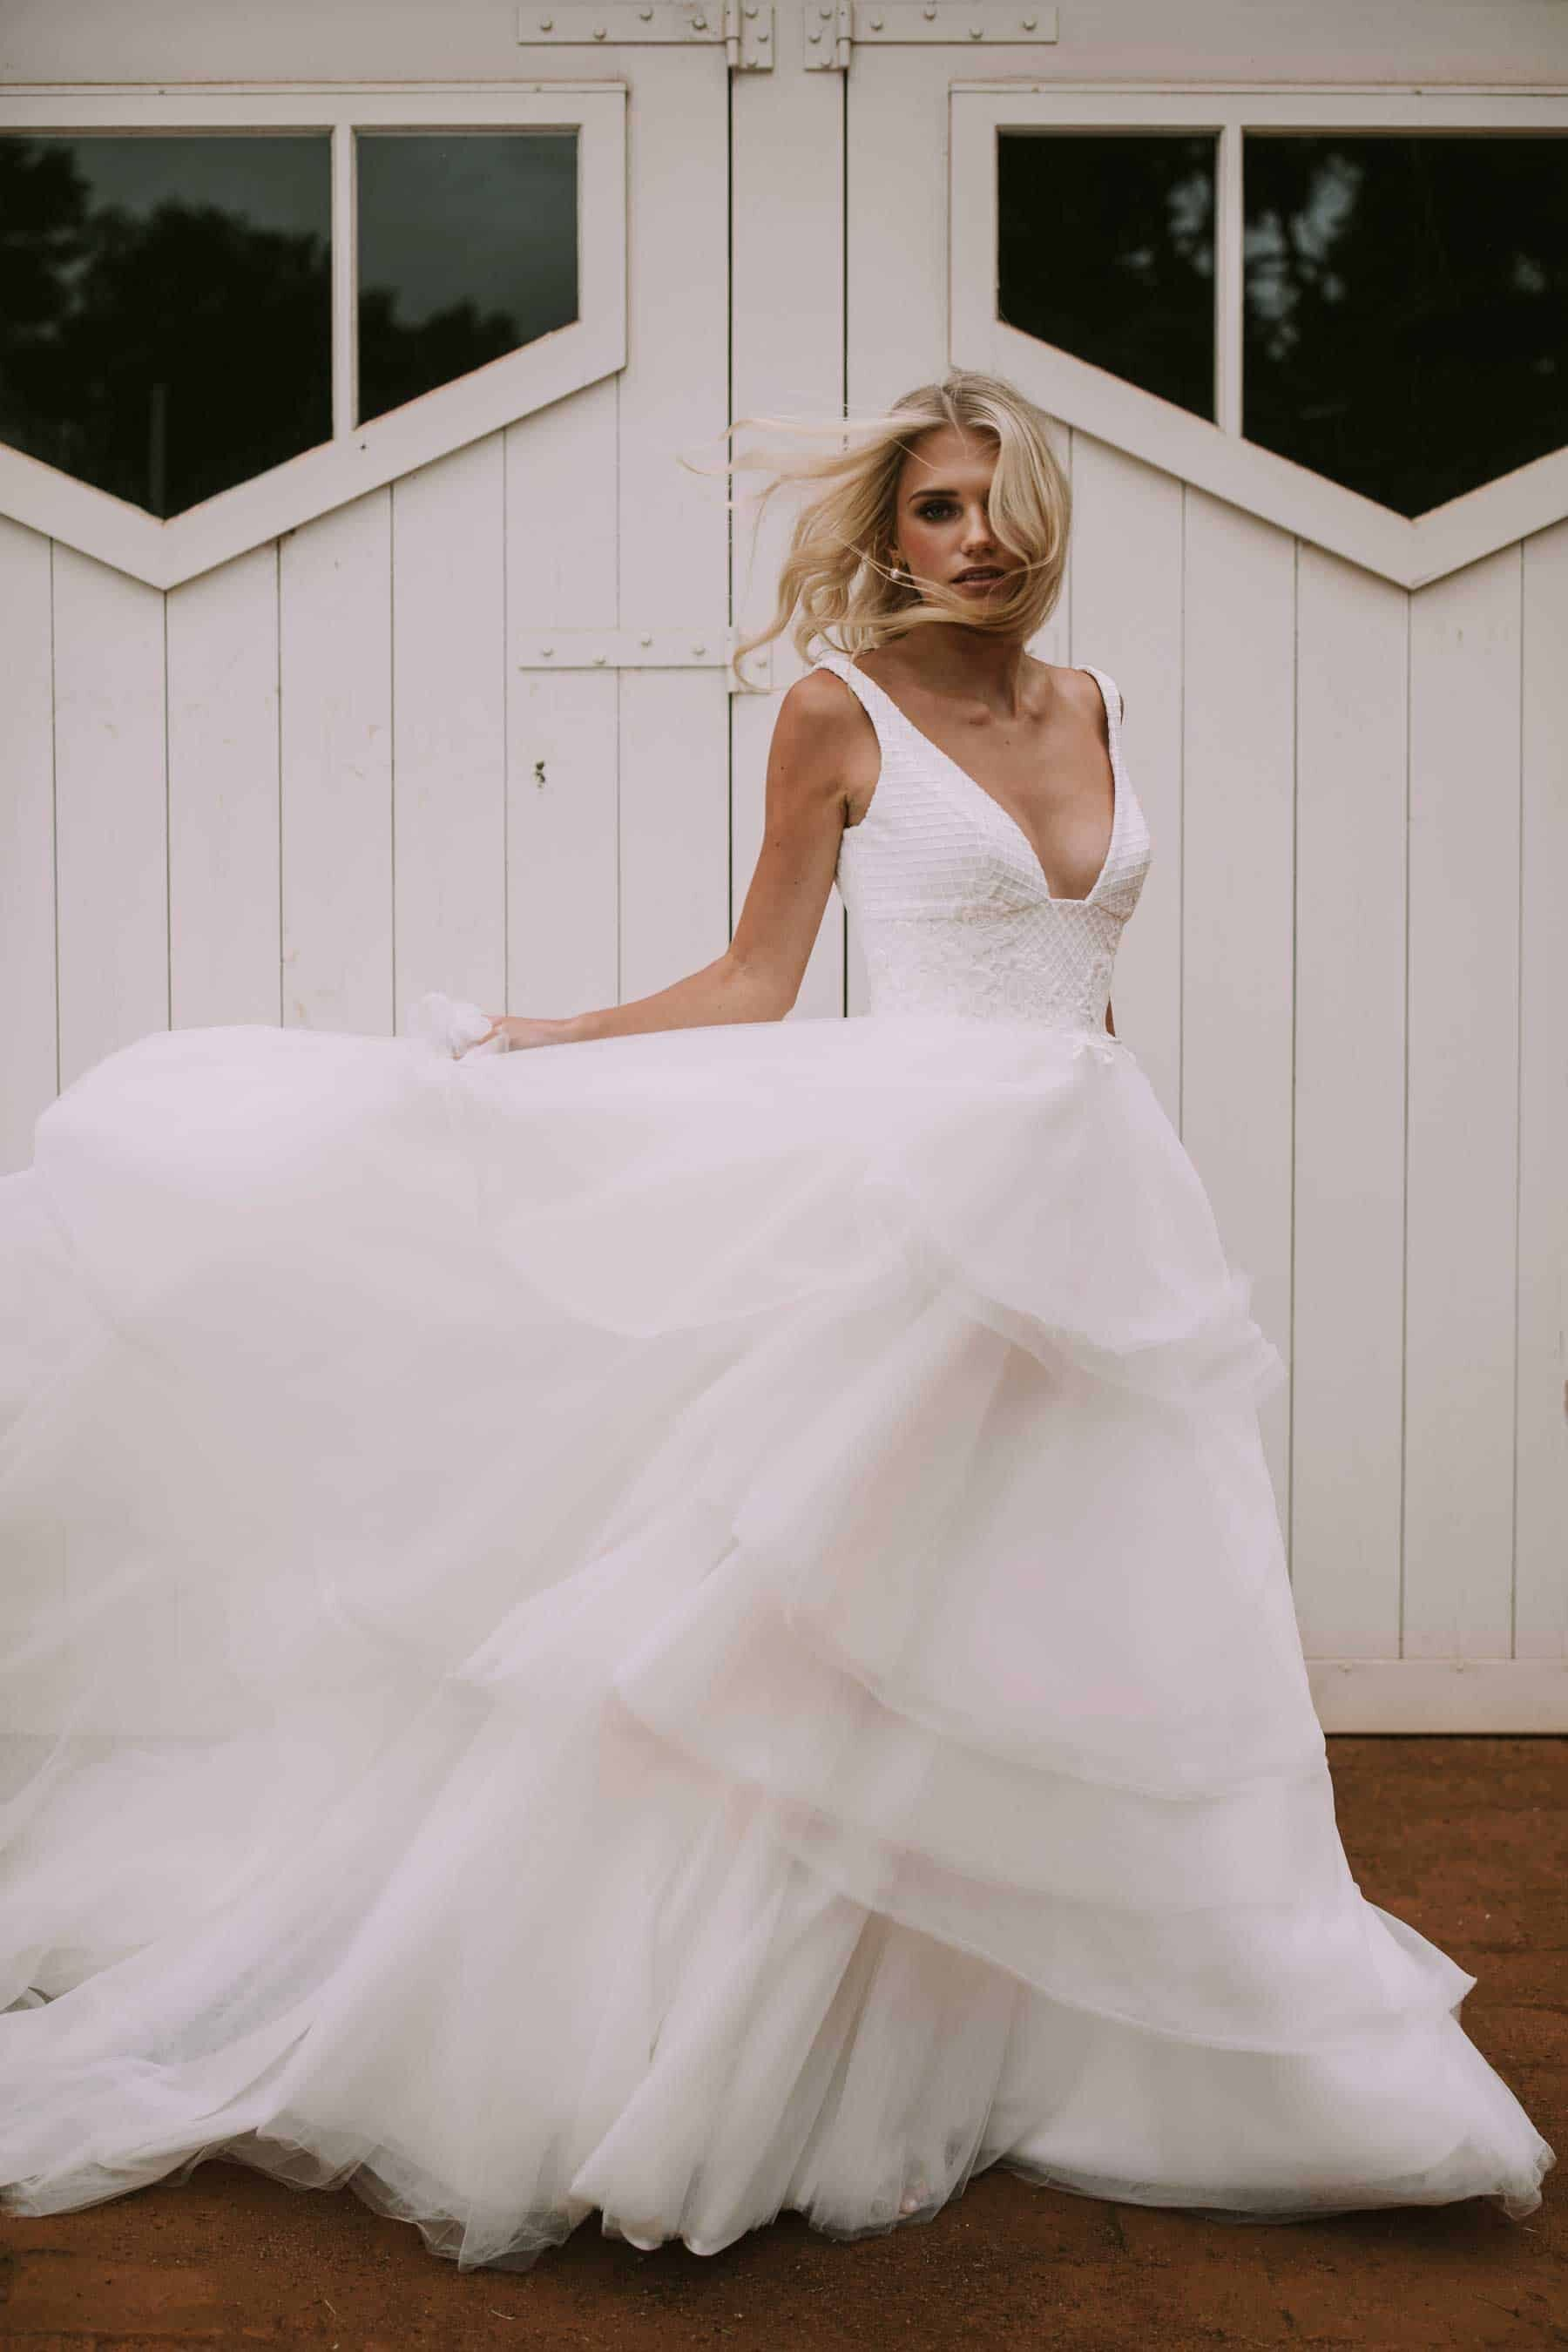 v-neck wedding dress with tiered tulle skirt